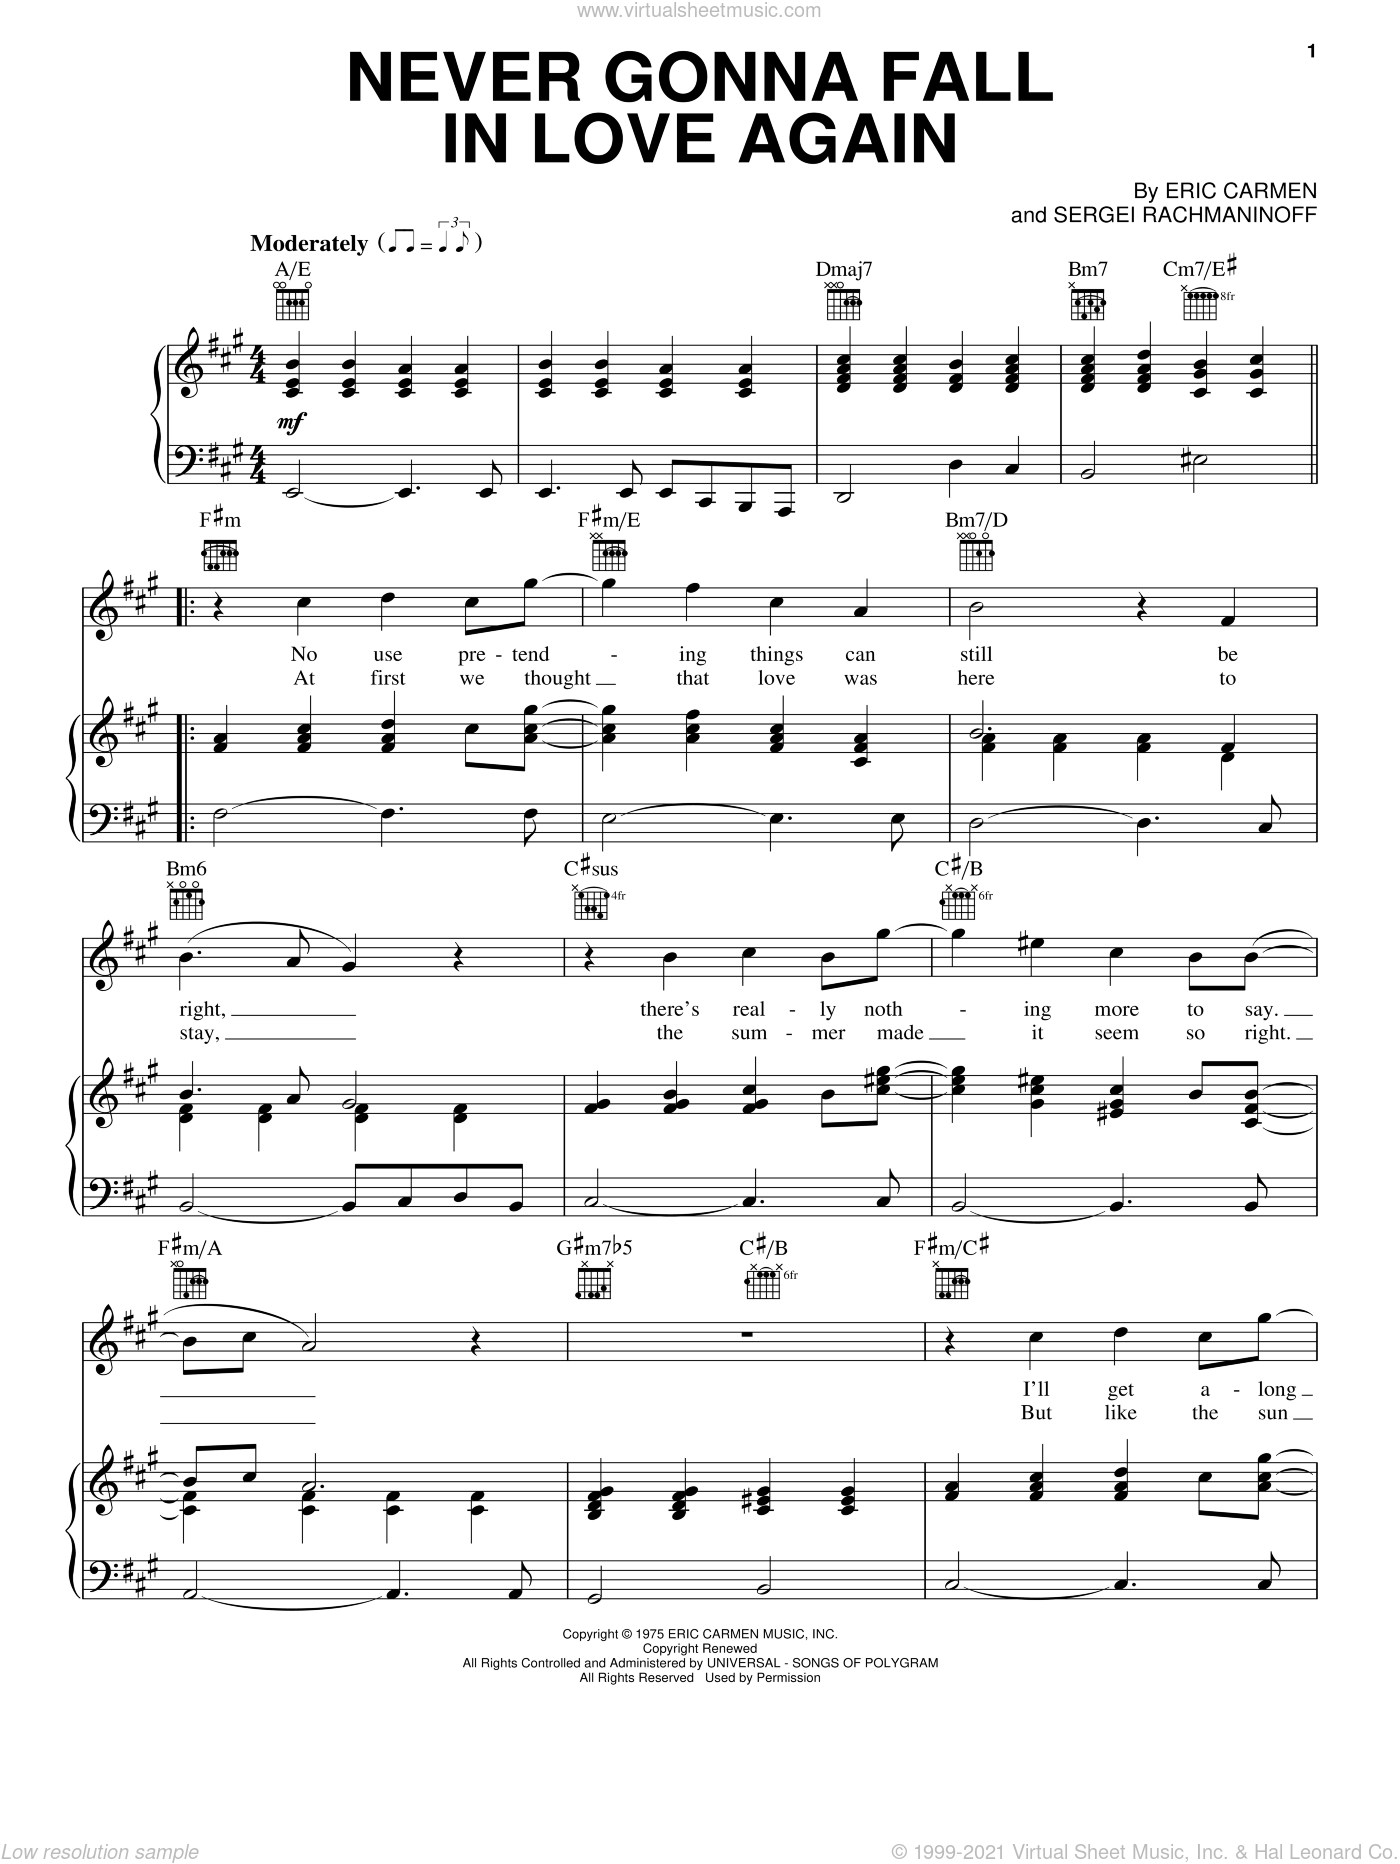 Never Gonna Fall In Love Again sheet music for voice, piano or guitar by Serjeij Rachmaninoff